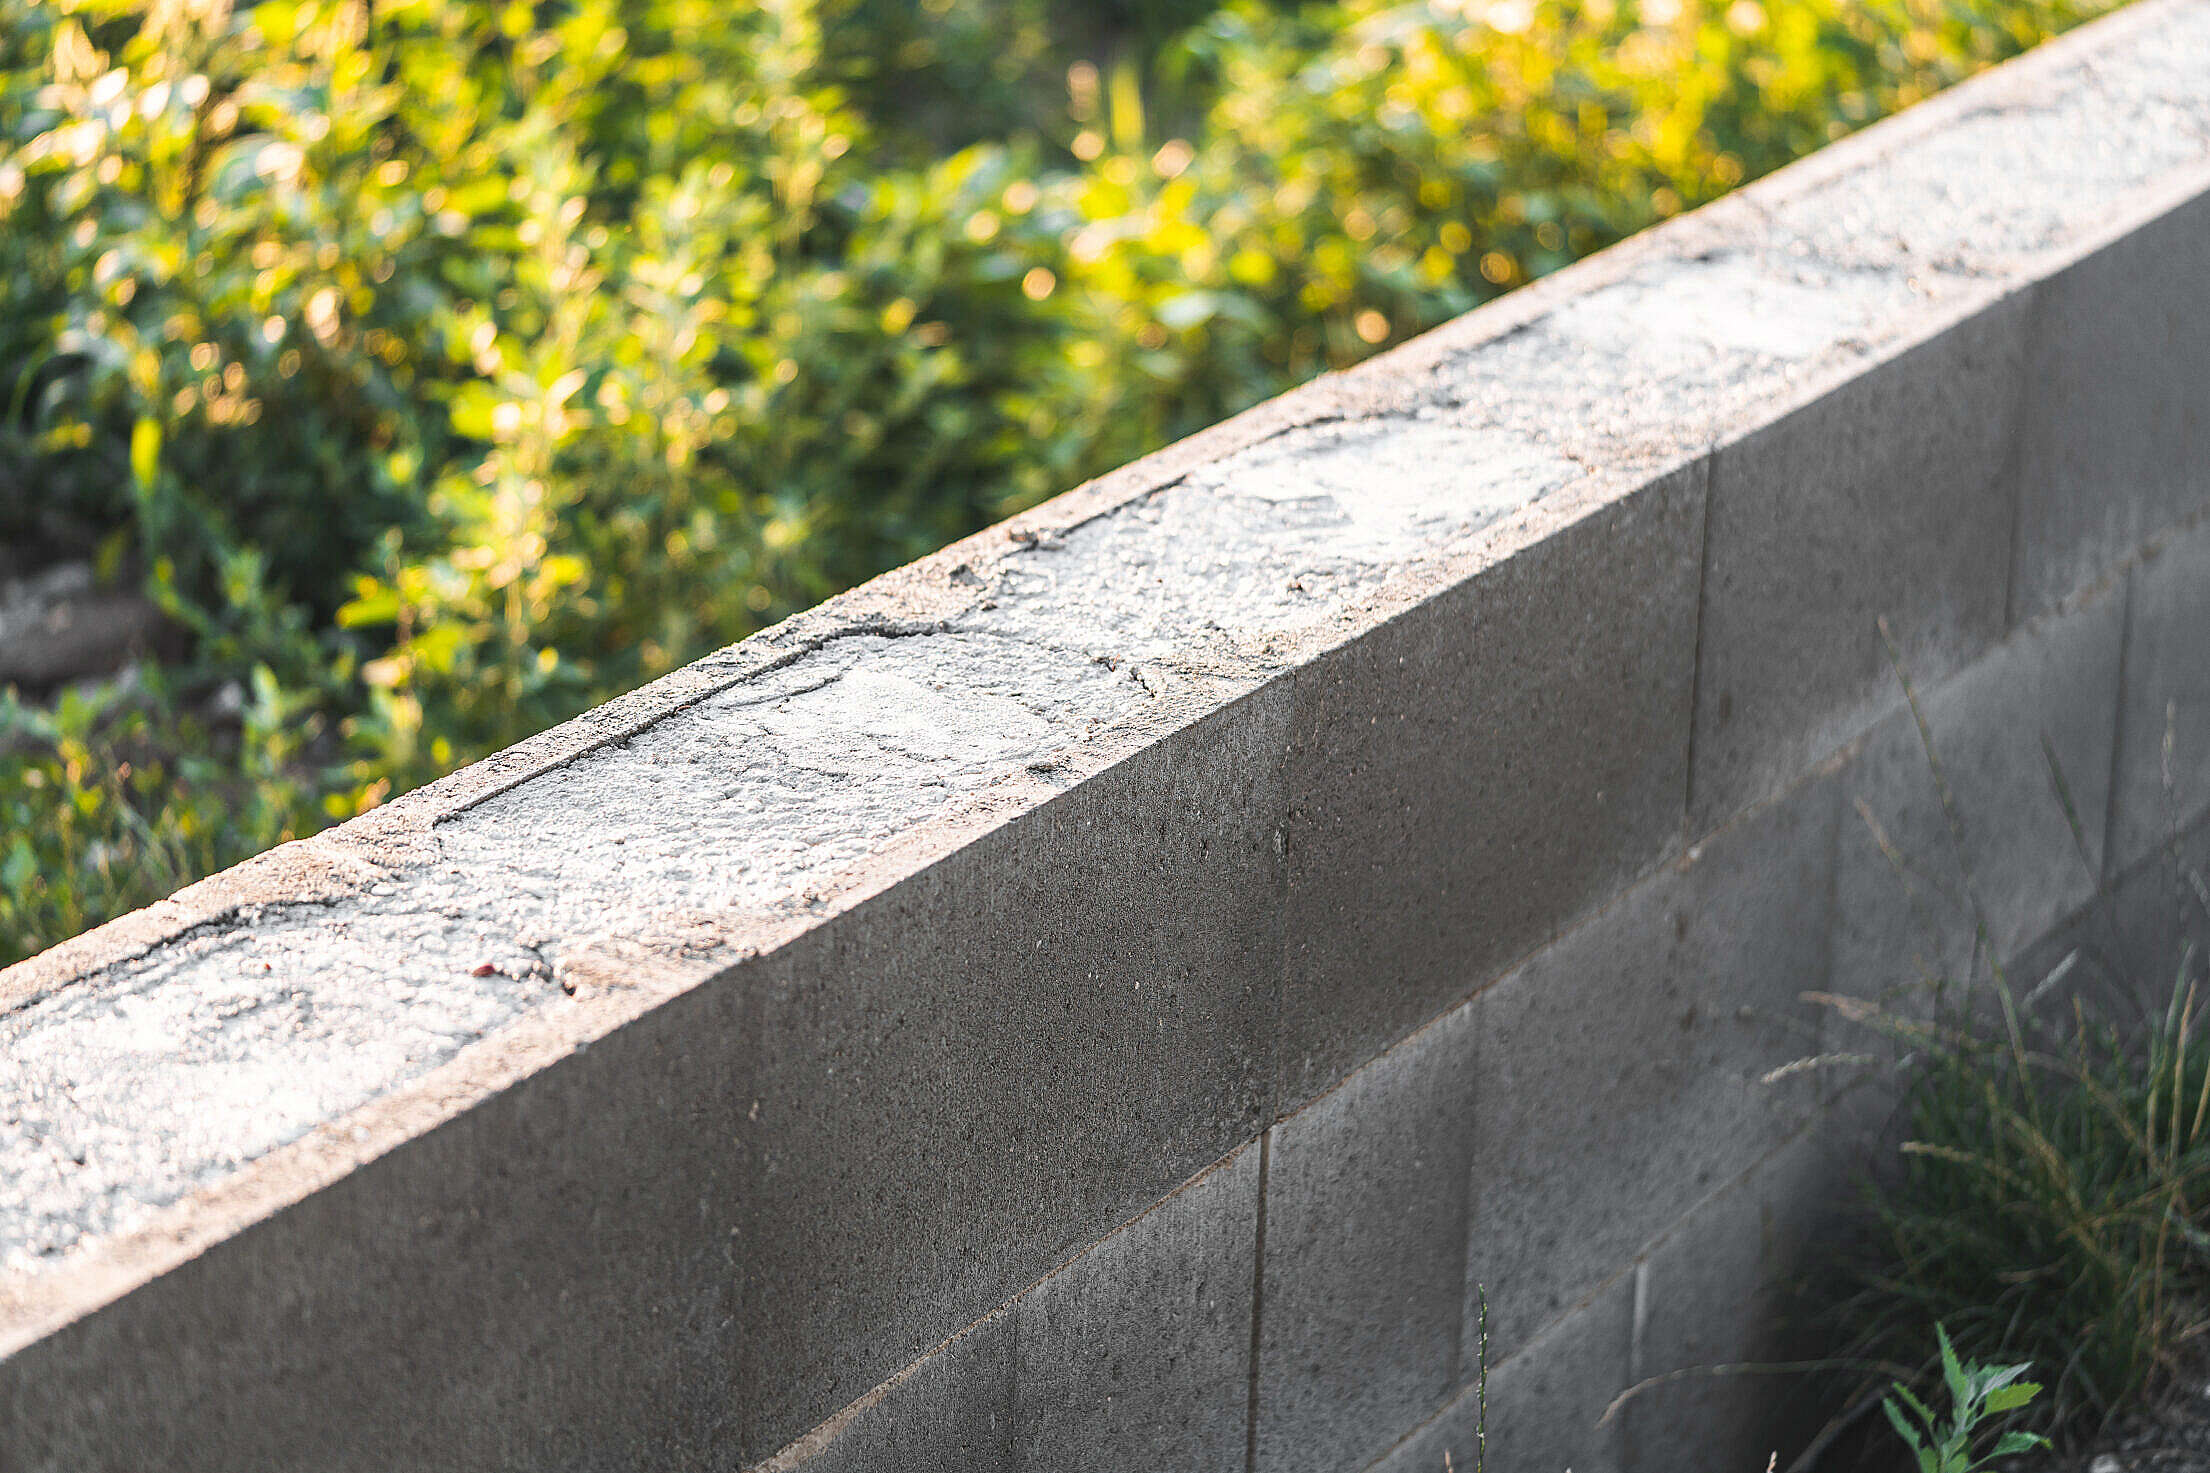 Lost Formwork Concrete Foundation for Fence Free Stock Photo